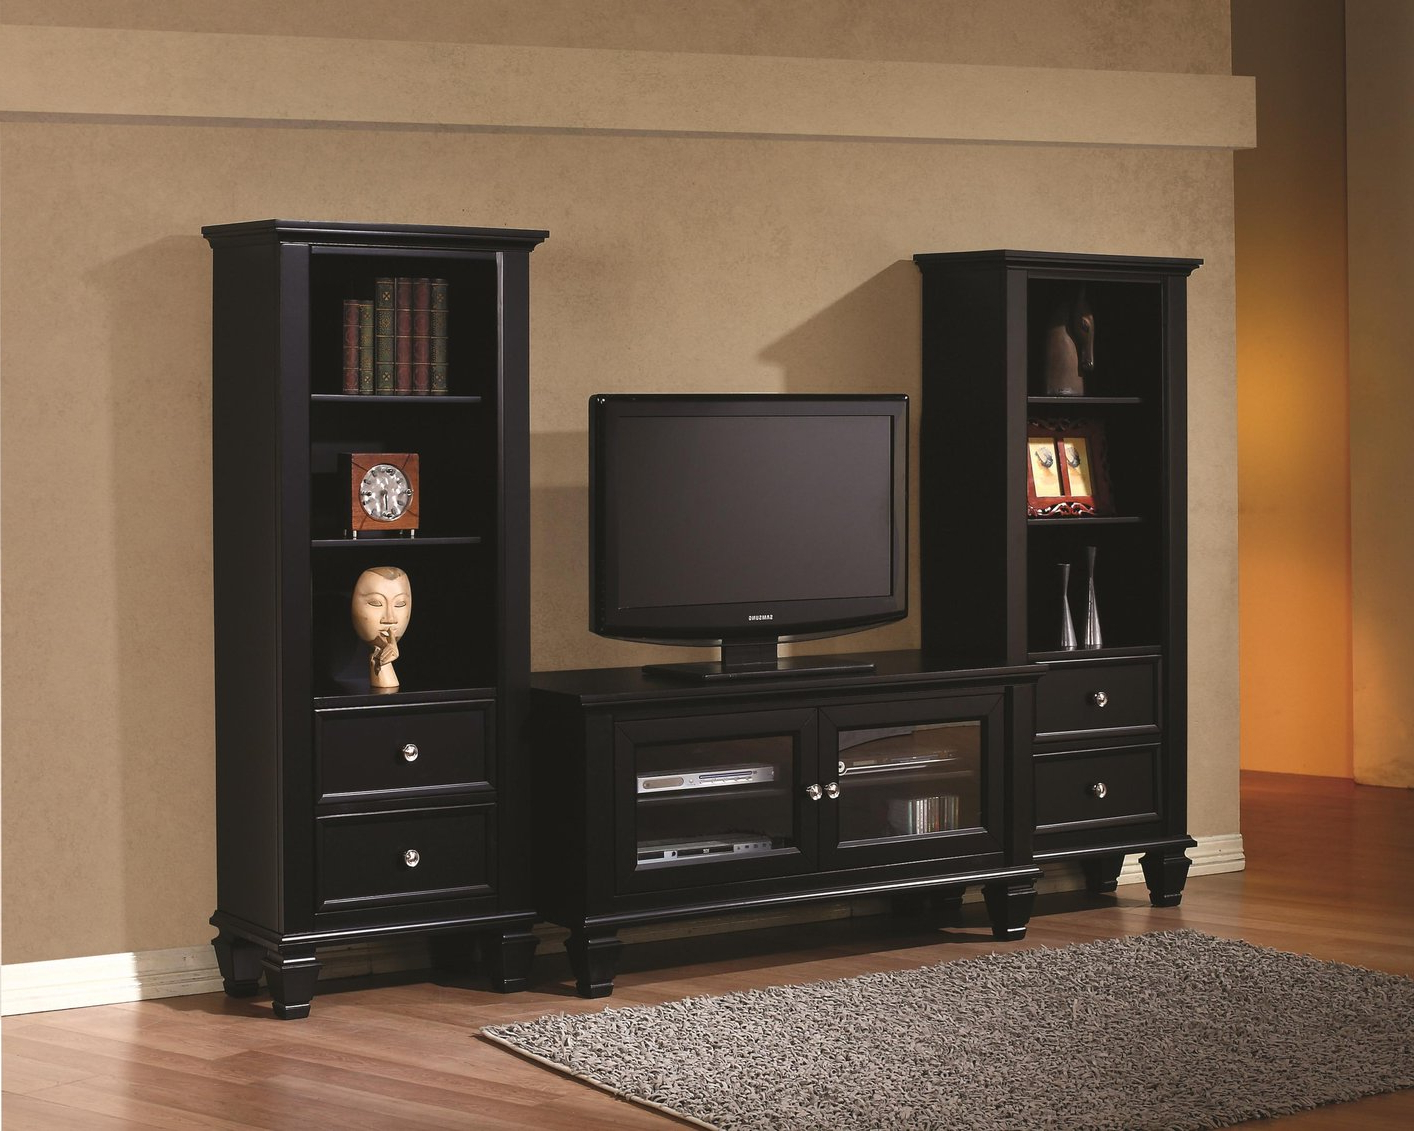 Black Wood Tv Stand – Steal A Sofa Furniture Outlet Los Angeles Ca Within Latest Dark Wood Tv Stands (View 2 of 20)